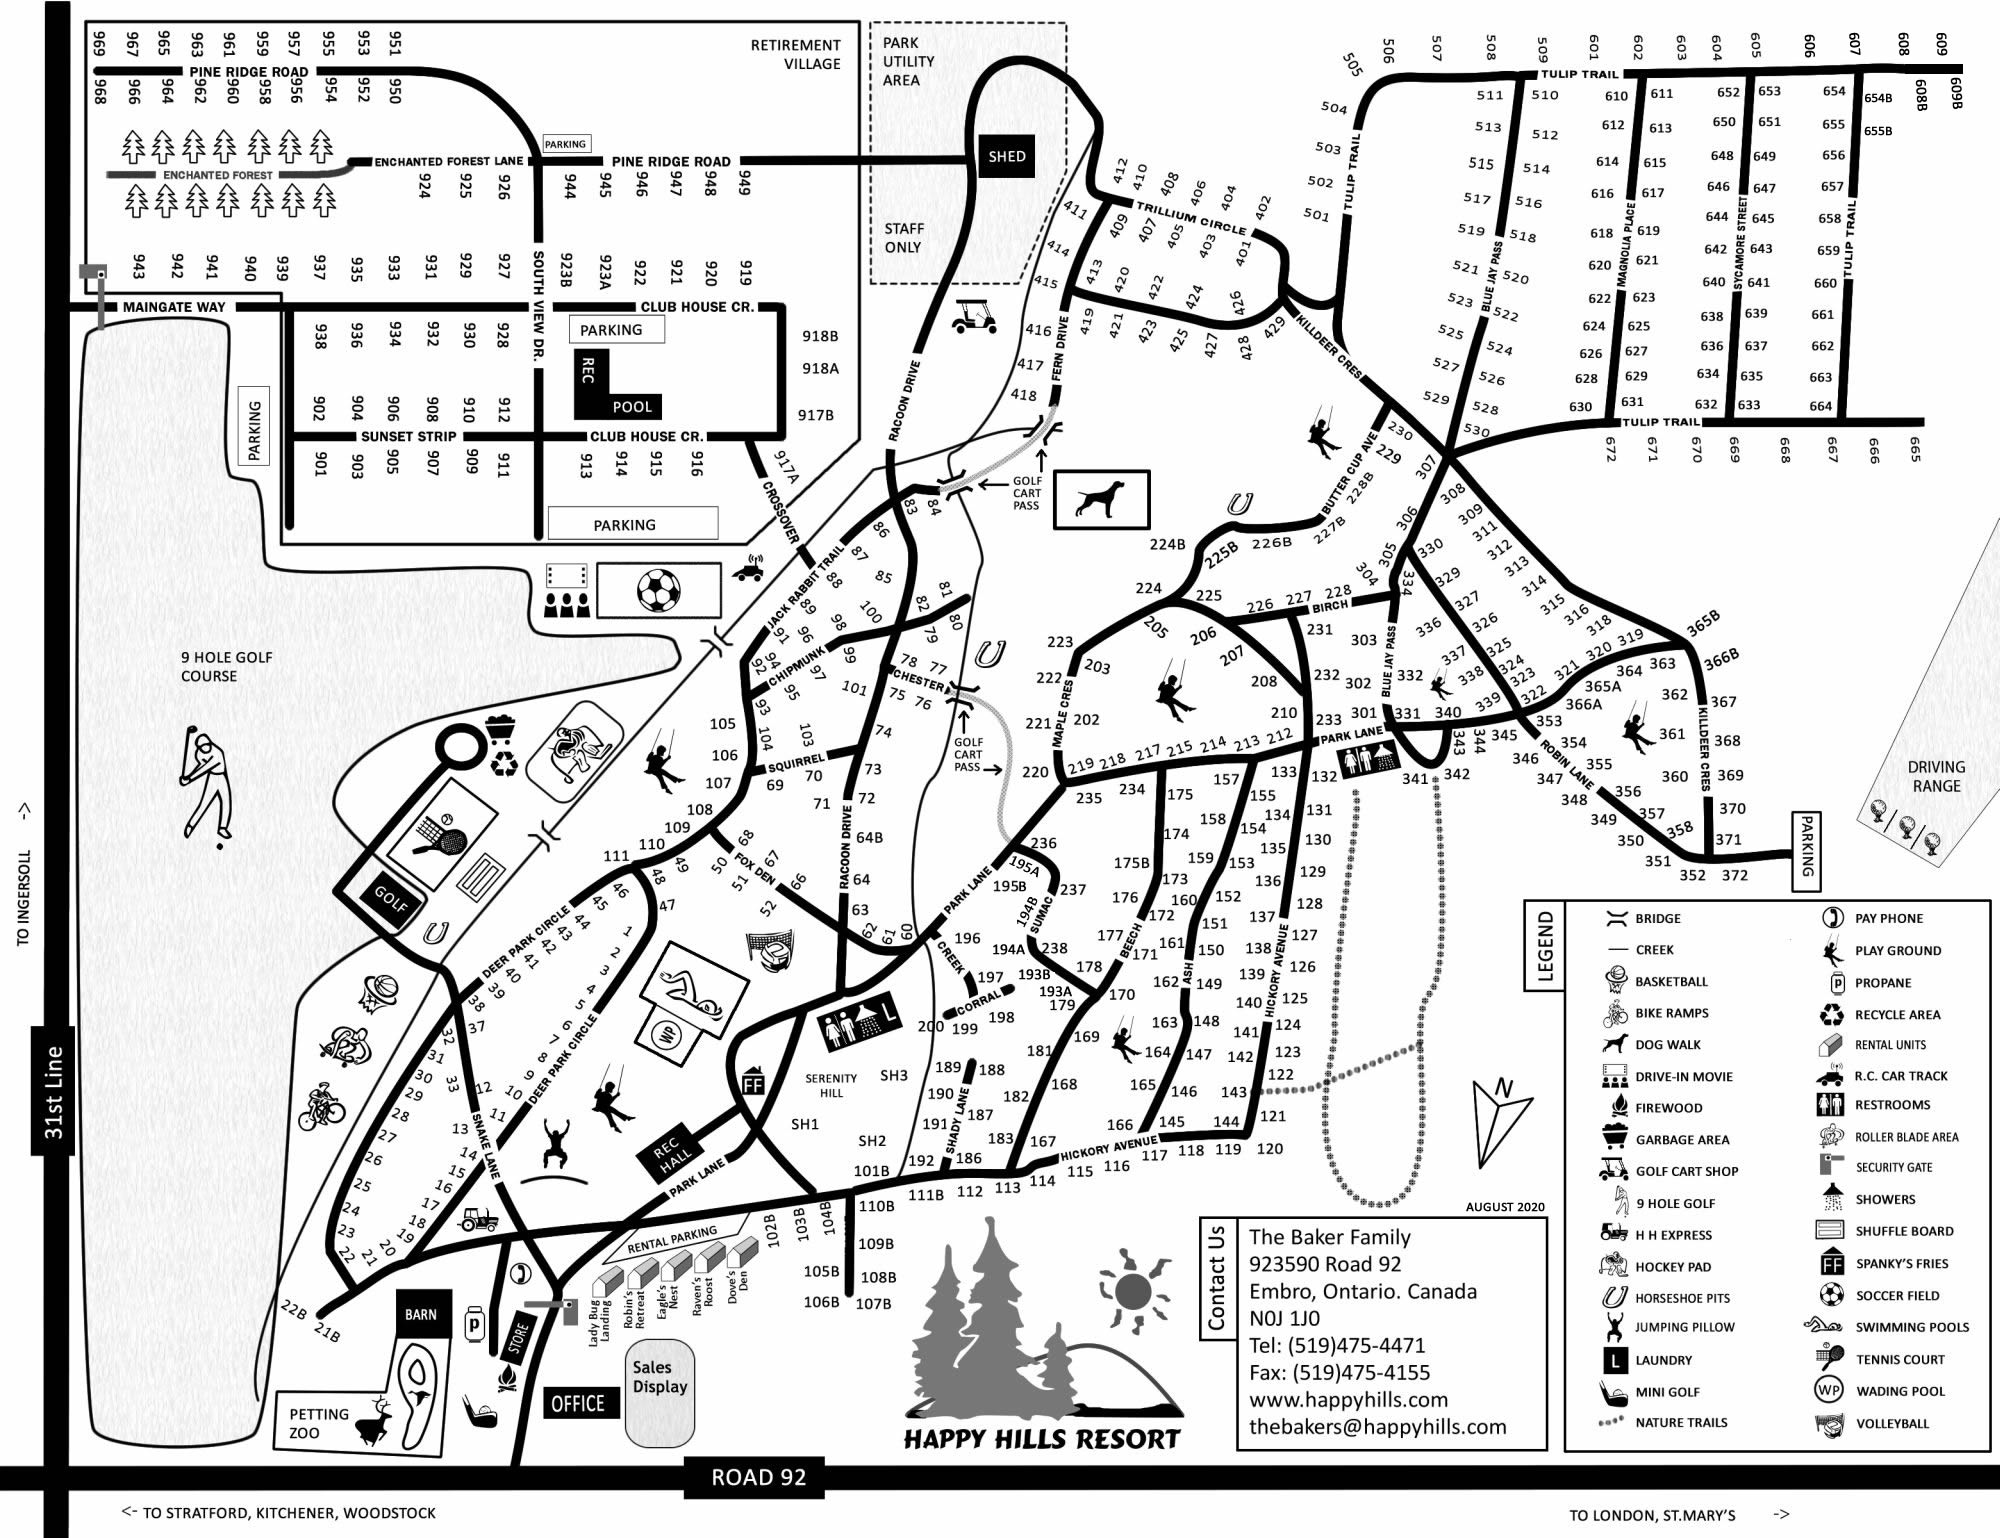 Driving Directions & Park Maps for Happy Hills Resort ... on